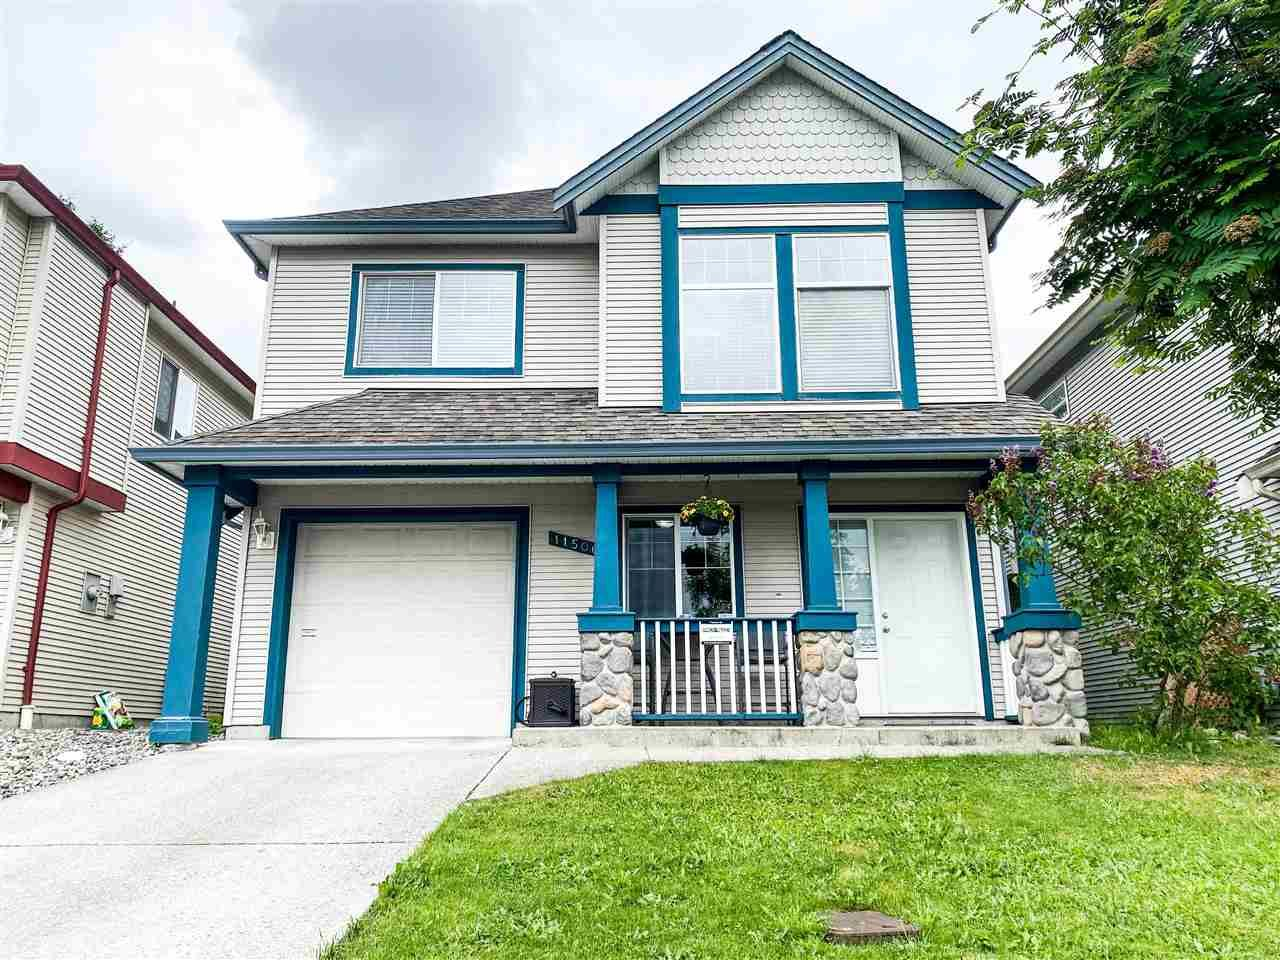 Main Photo: 11506 228 Street in Maple Ridge: East Central House for sale : MLS®# R2594087